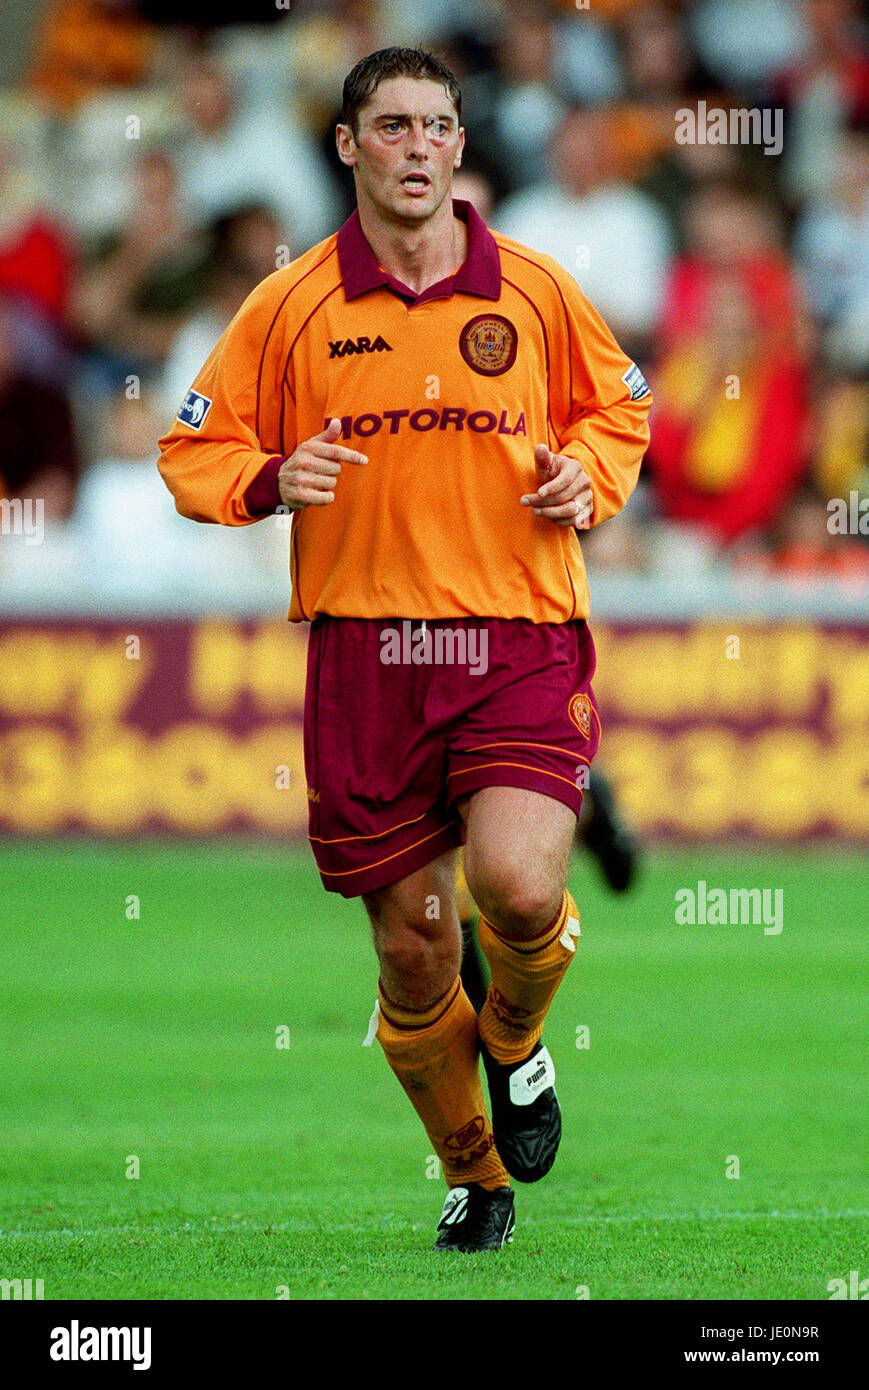 SCOTT LEITCH MOTHERWELL FC 27 August 2000 - Stock Image